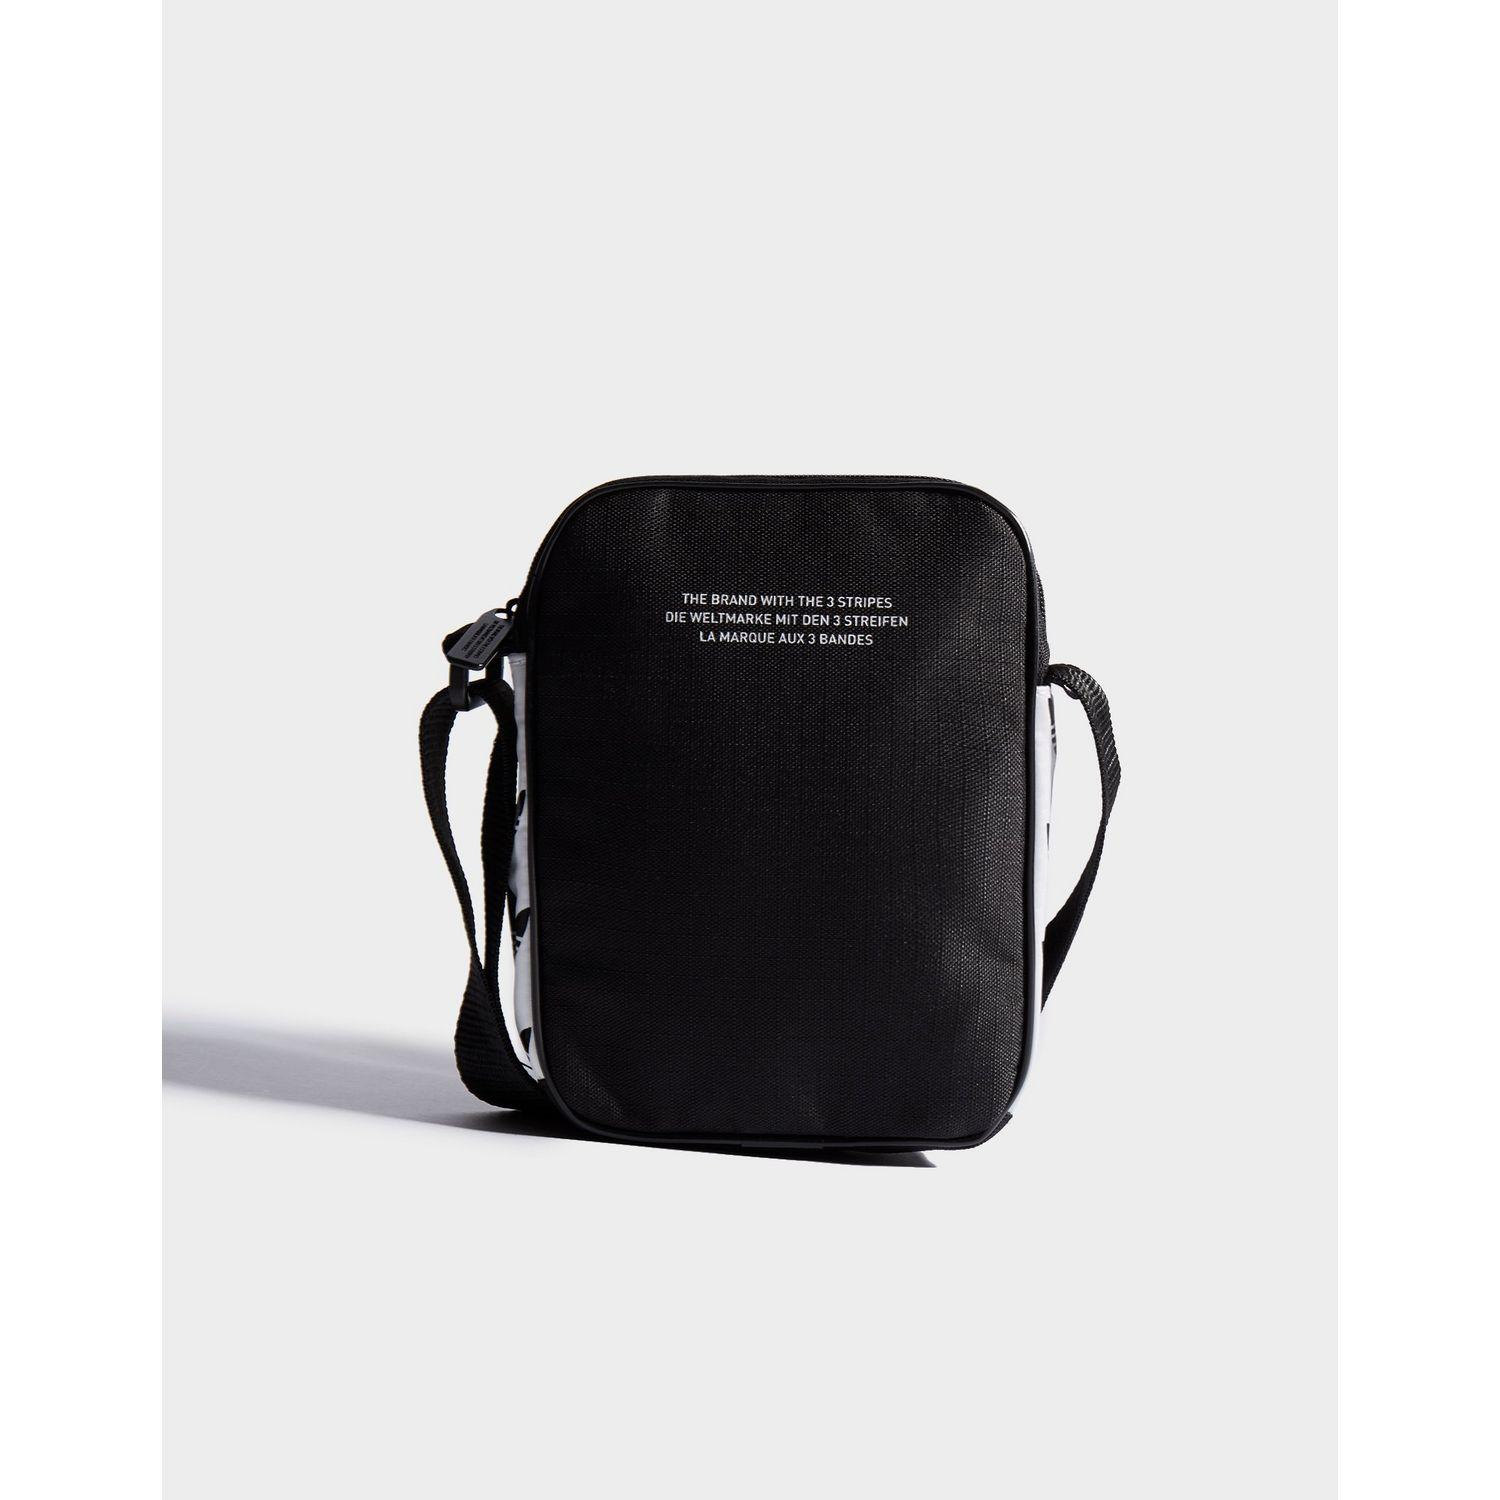 be64ec7eec Adidas Originals - Black Mini Tape Crossbody Bag - Lyst. View fullscreen